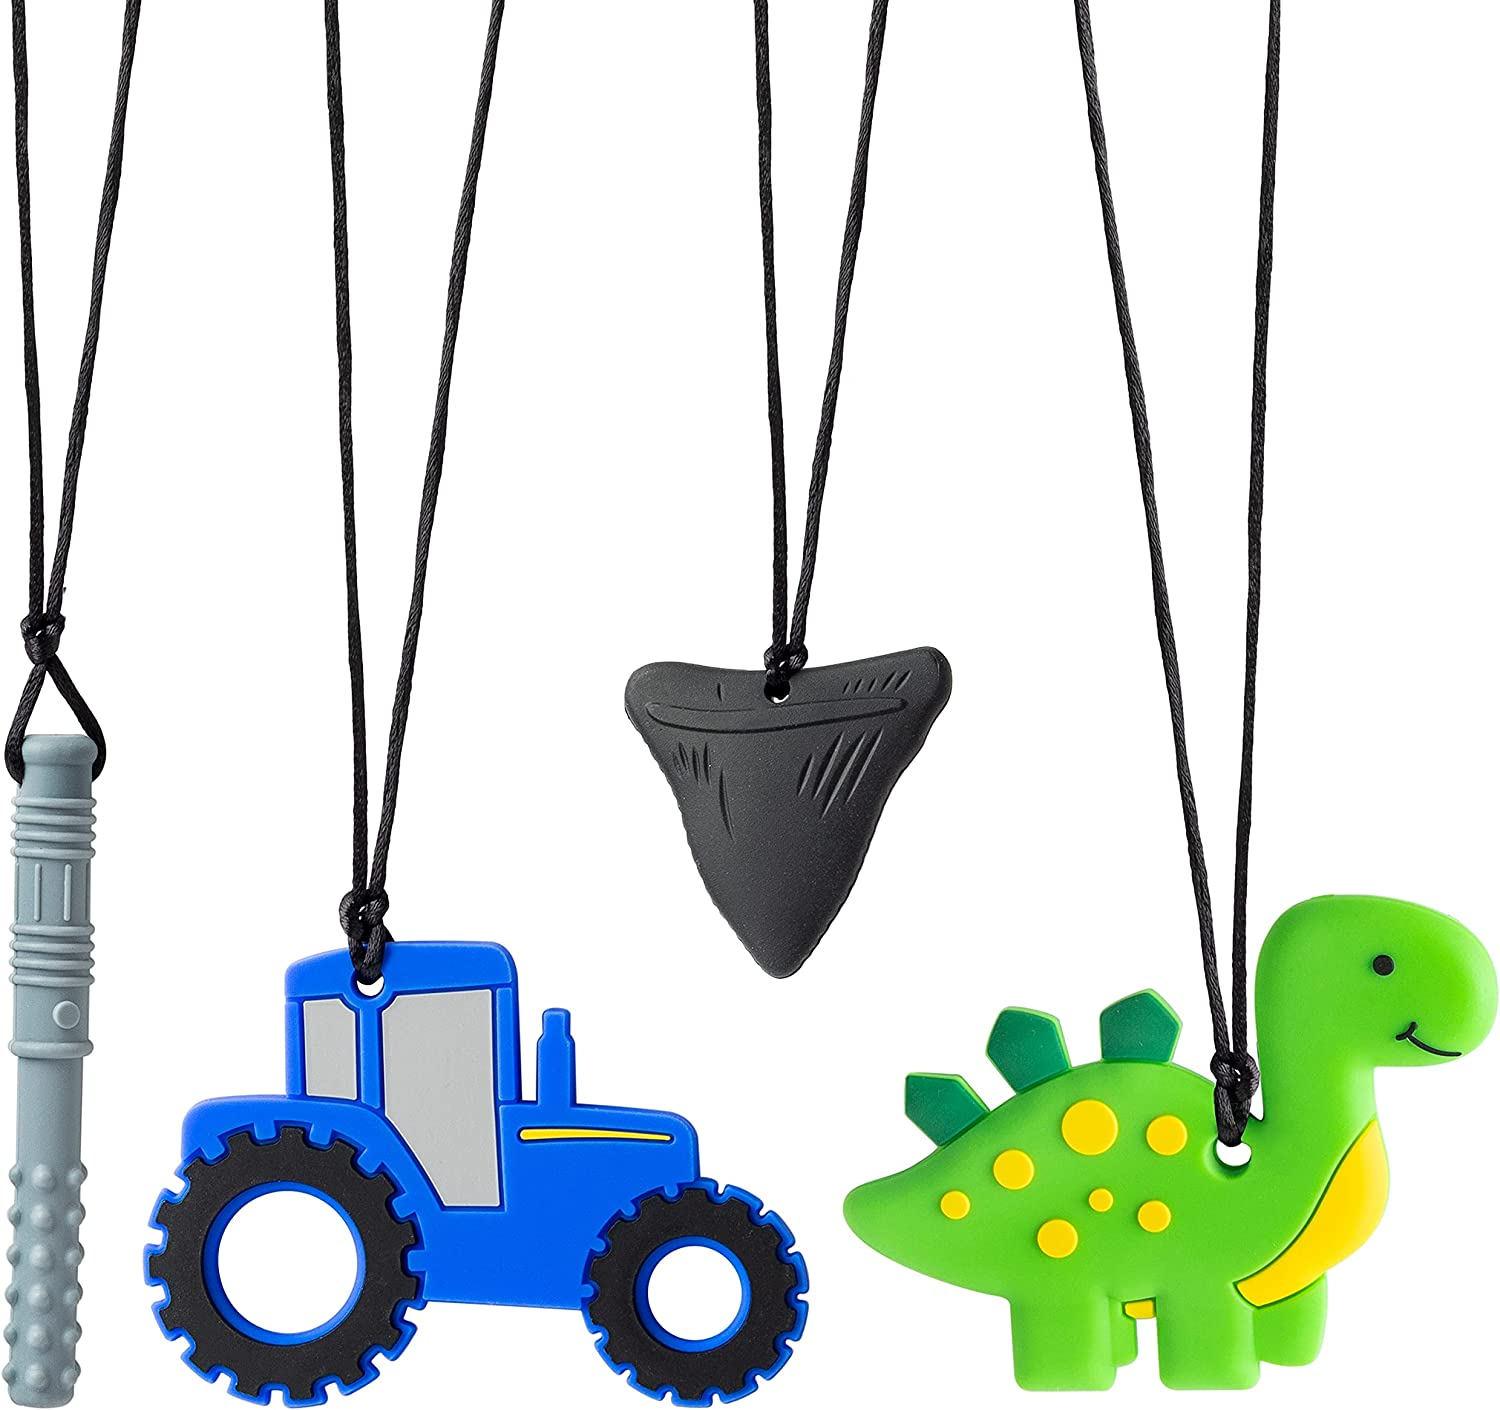 GROBRO7 4Pcs Sensory Chew Necklaces Car Teether Shark Tooth Food Grade Silicone Teething Chewing Toy Dinosaur Chewable Pendant Chewy Tubes for Infant Nibble Oral Motor Autism ADHD Boy Girl Kids